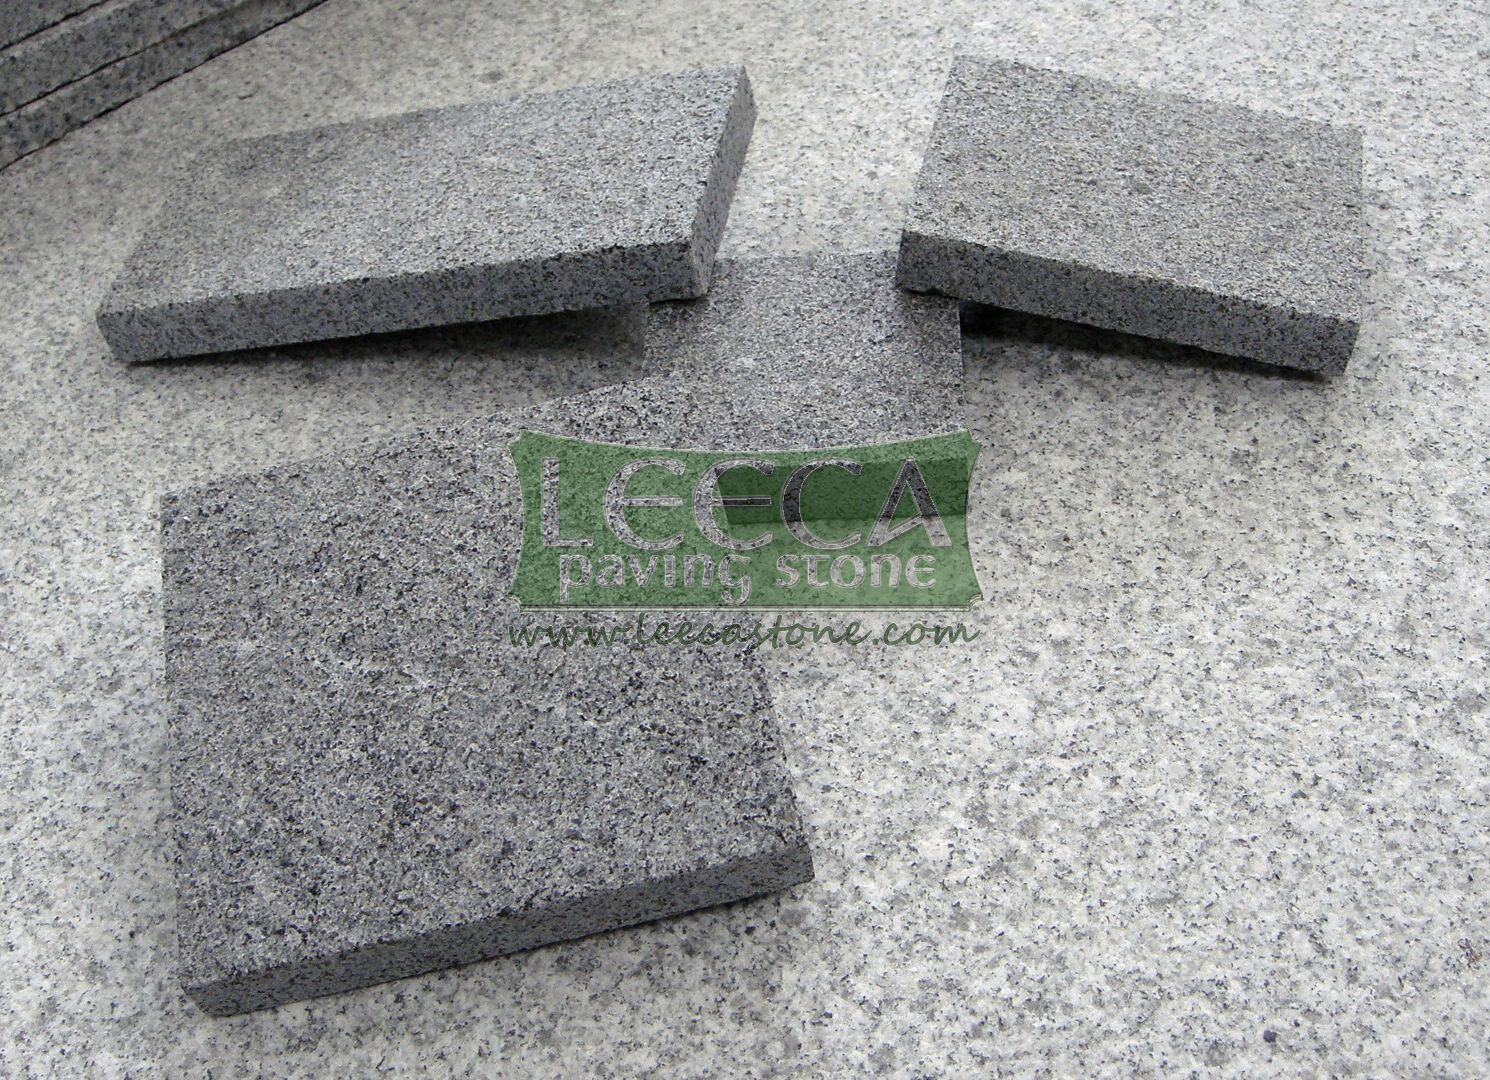 Professional Stone Pavings Laying Guides